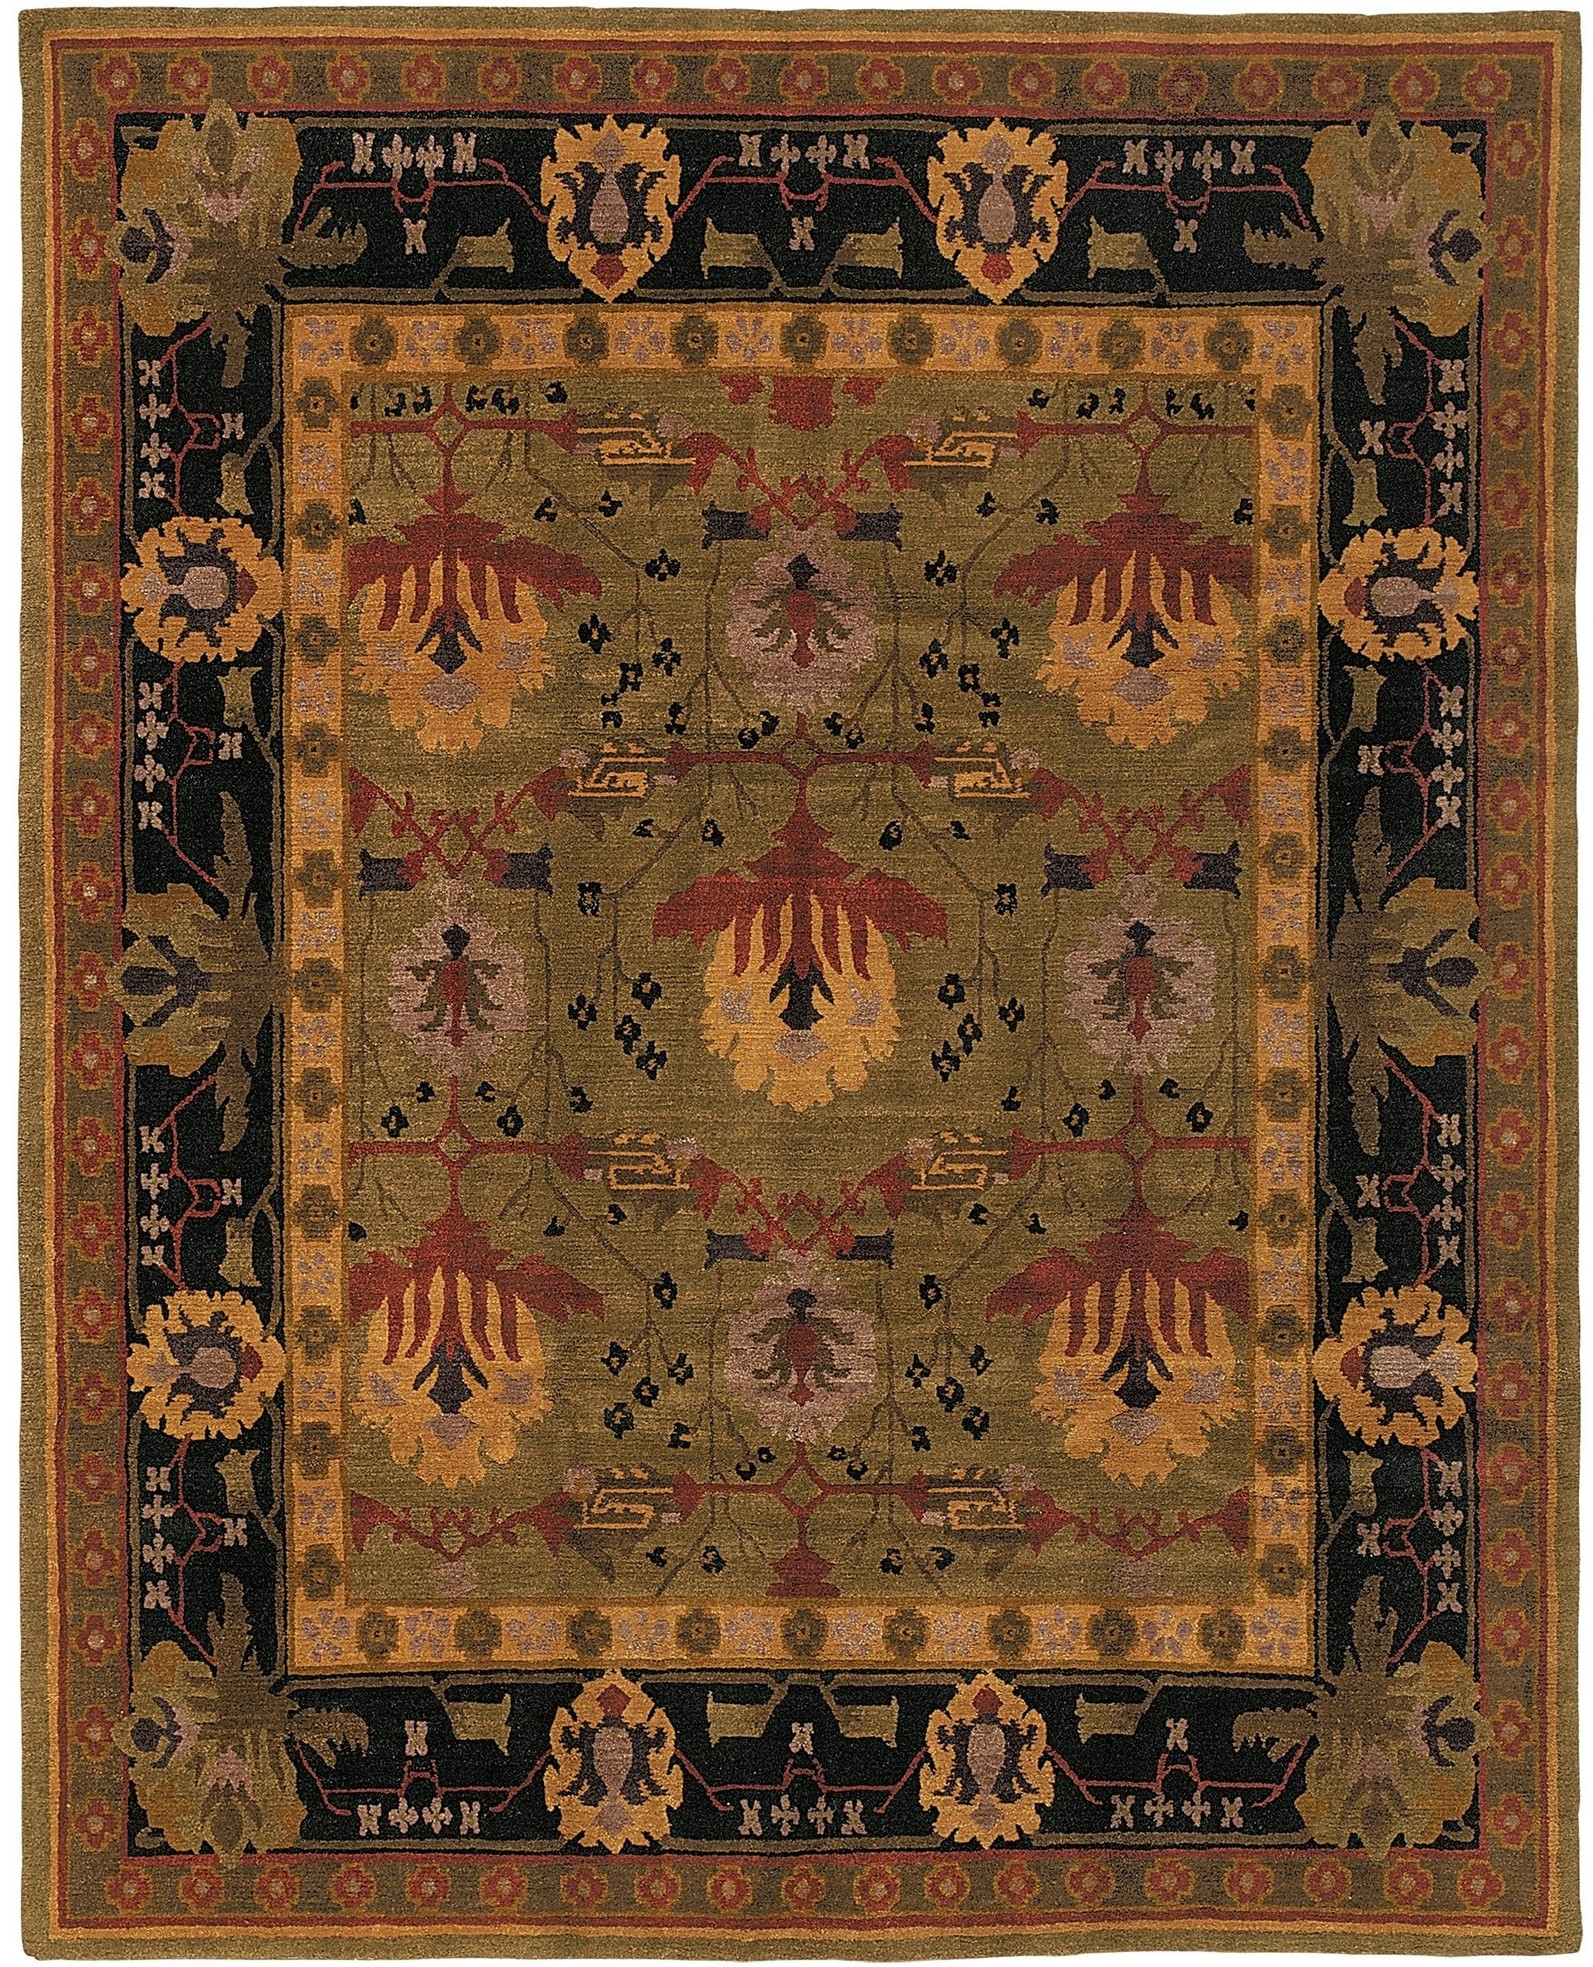 Crafts Donegal Ii Rugs Nocturne